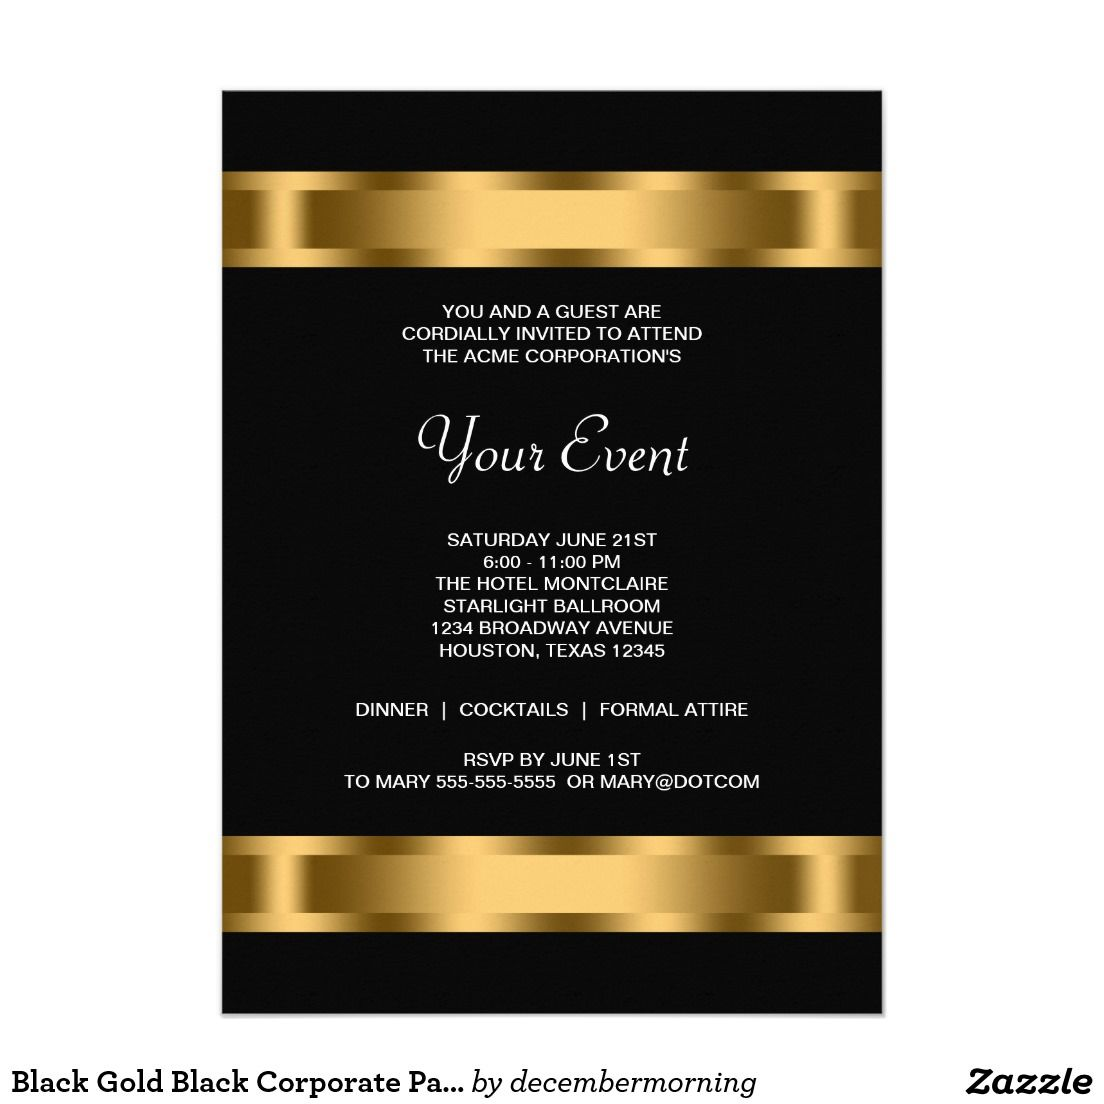 Black gold black corporate party event invitation corporate party black gold black corporate party event event invitation templates invitation cards corporate invitation wajeb Gallery